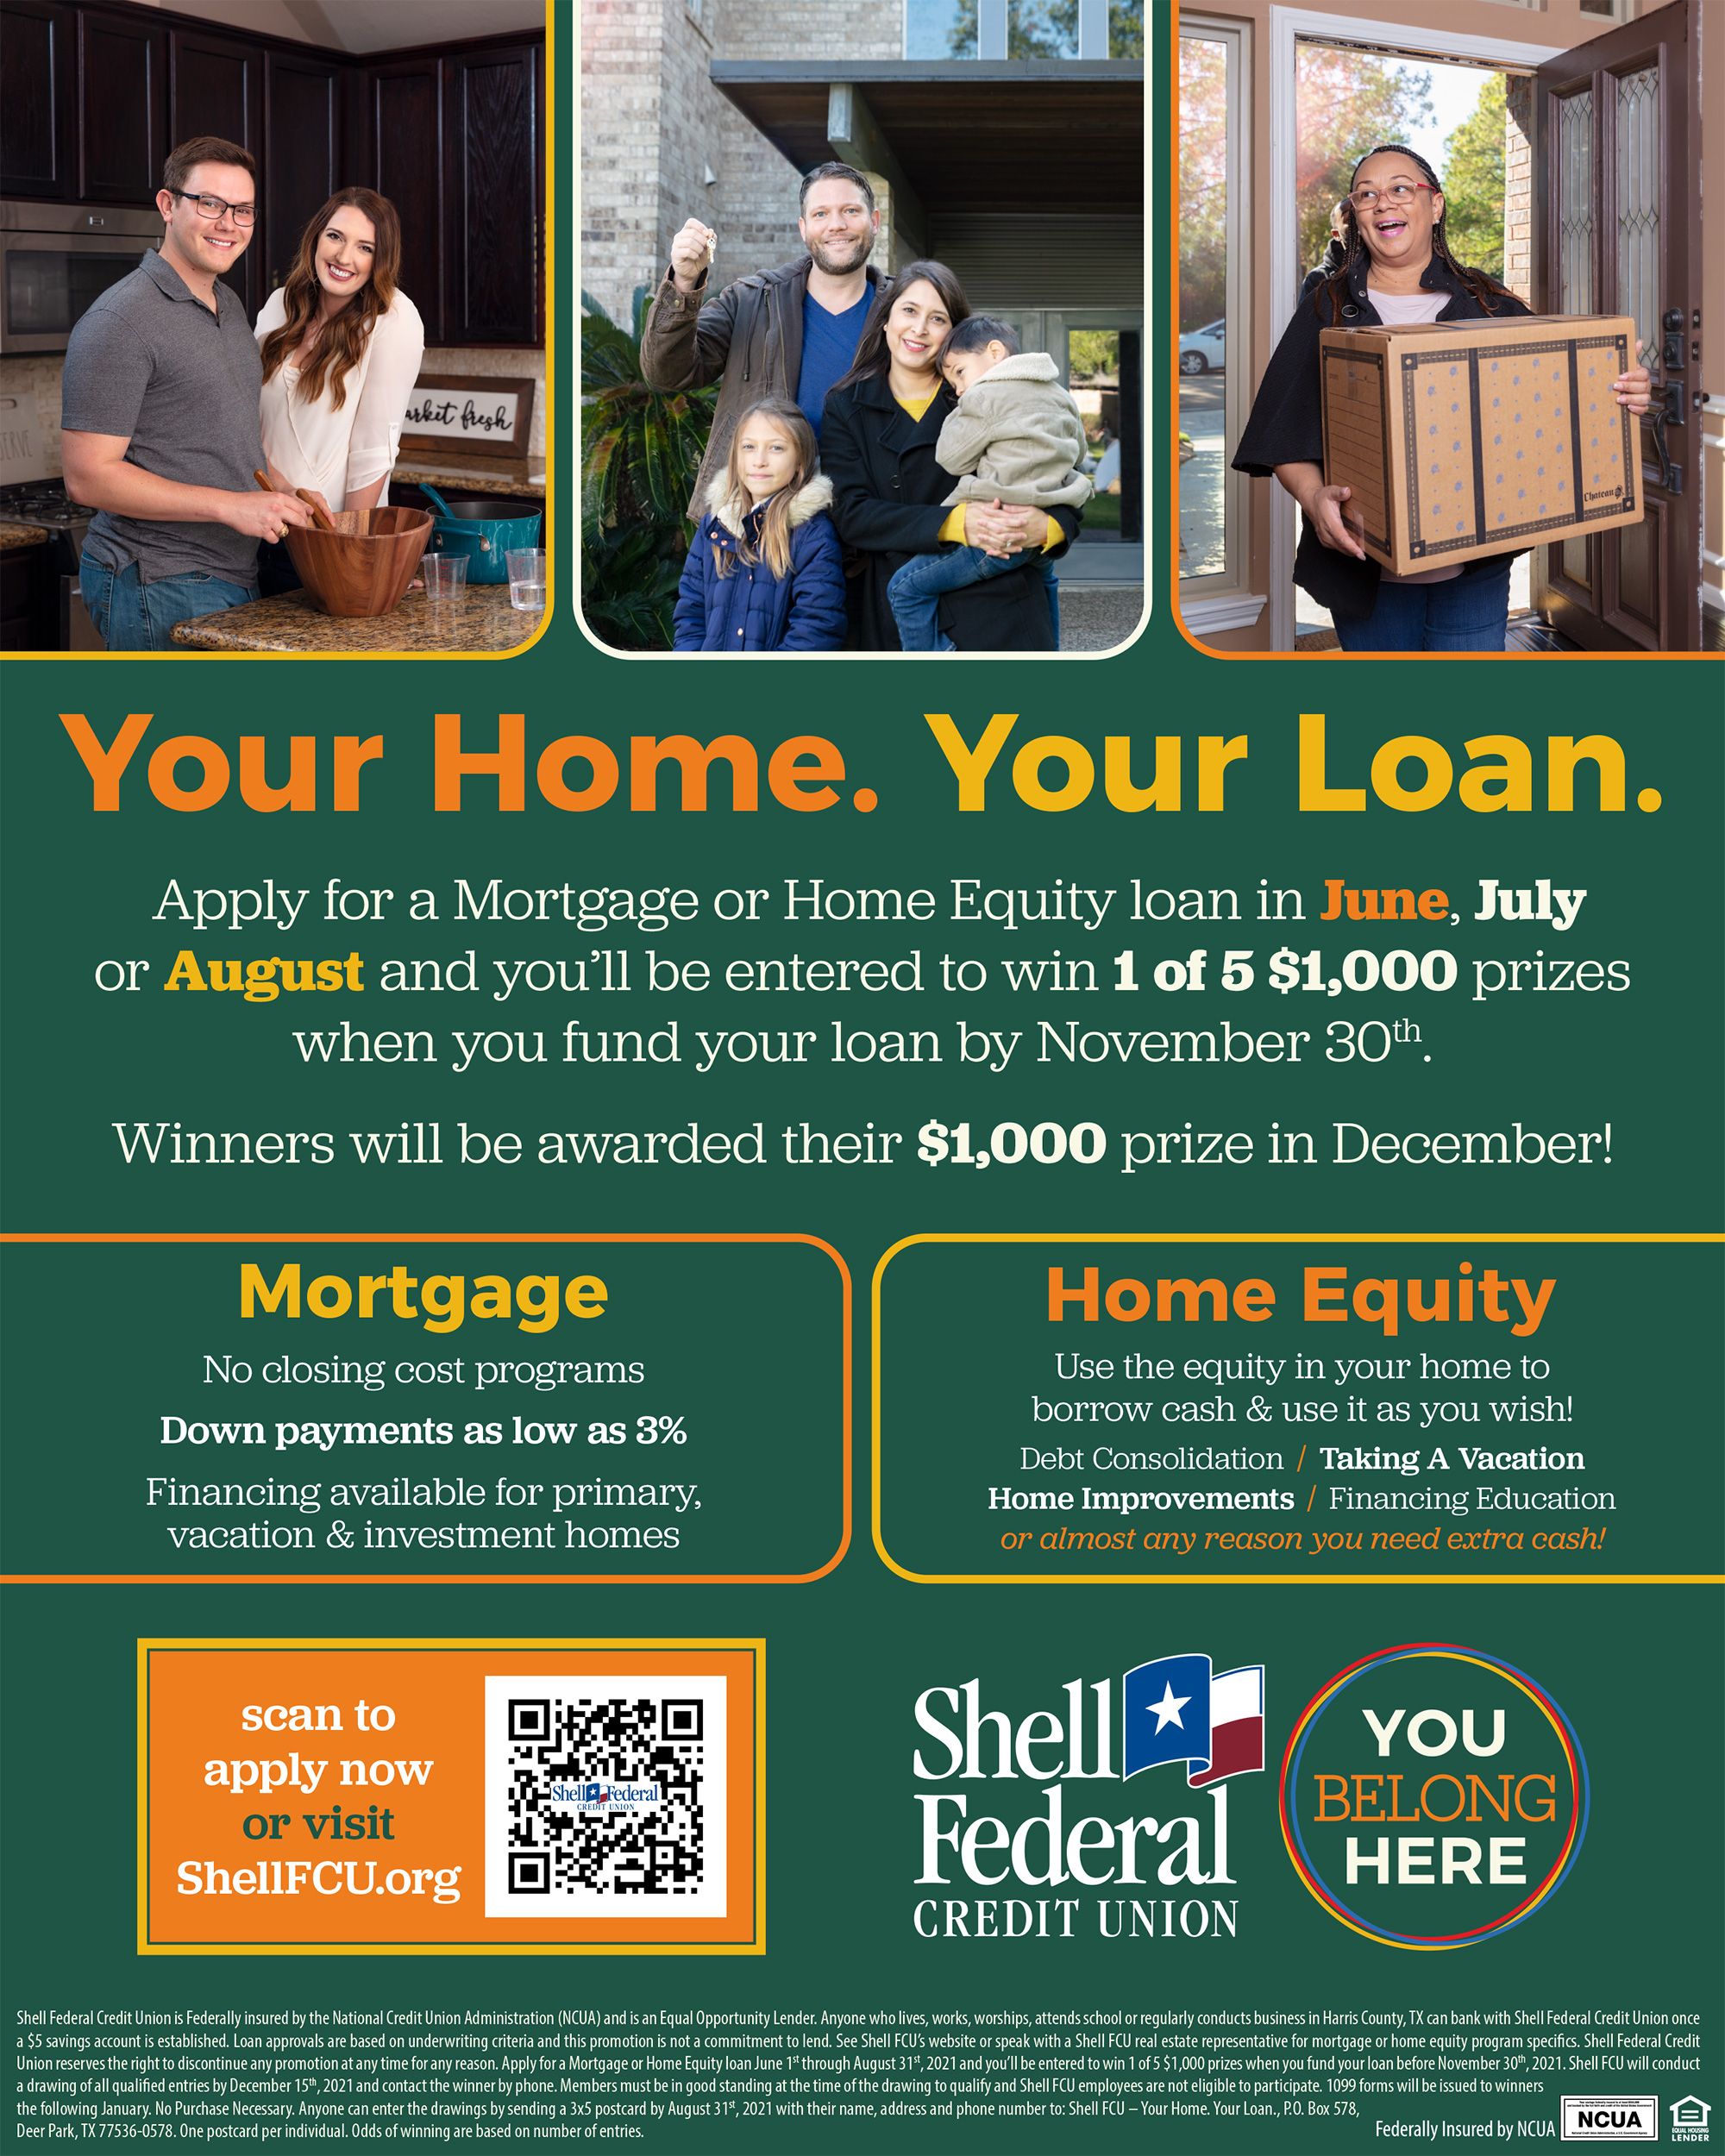 Your Home Your Loan